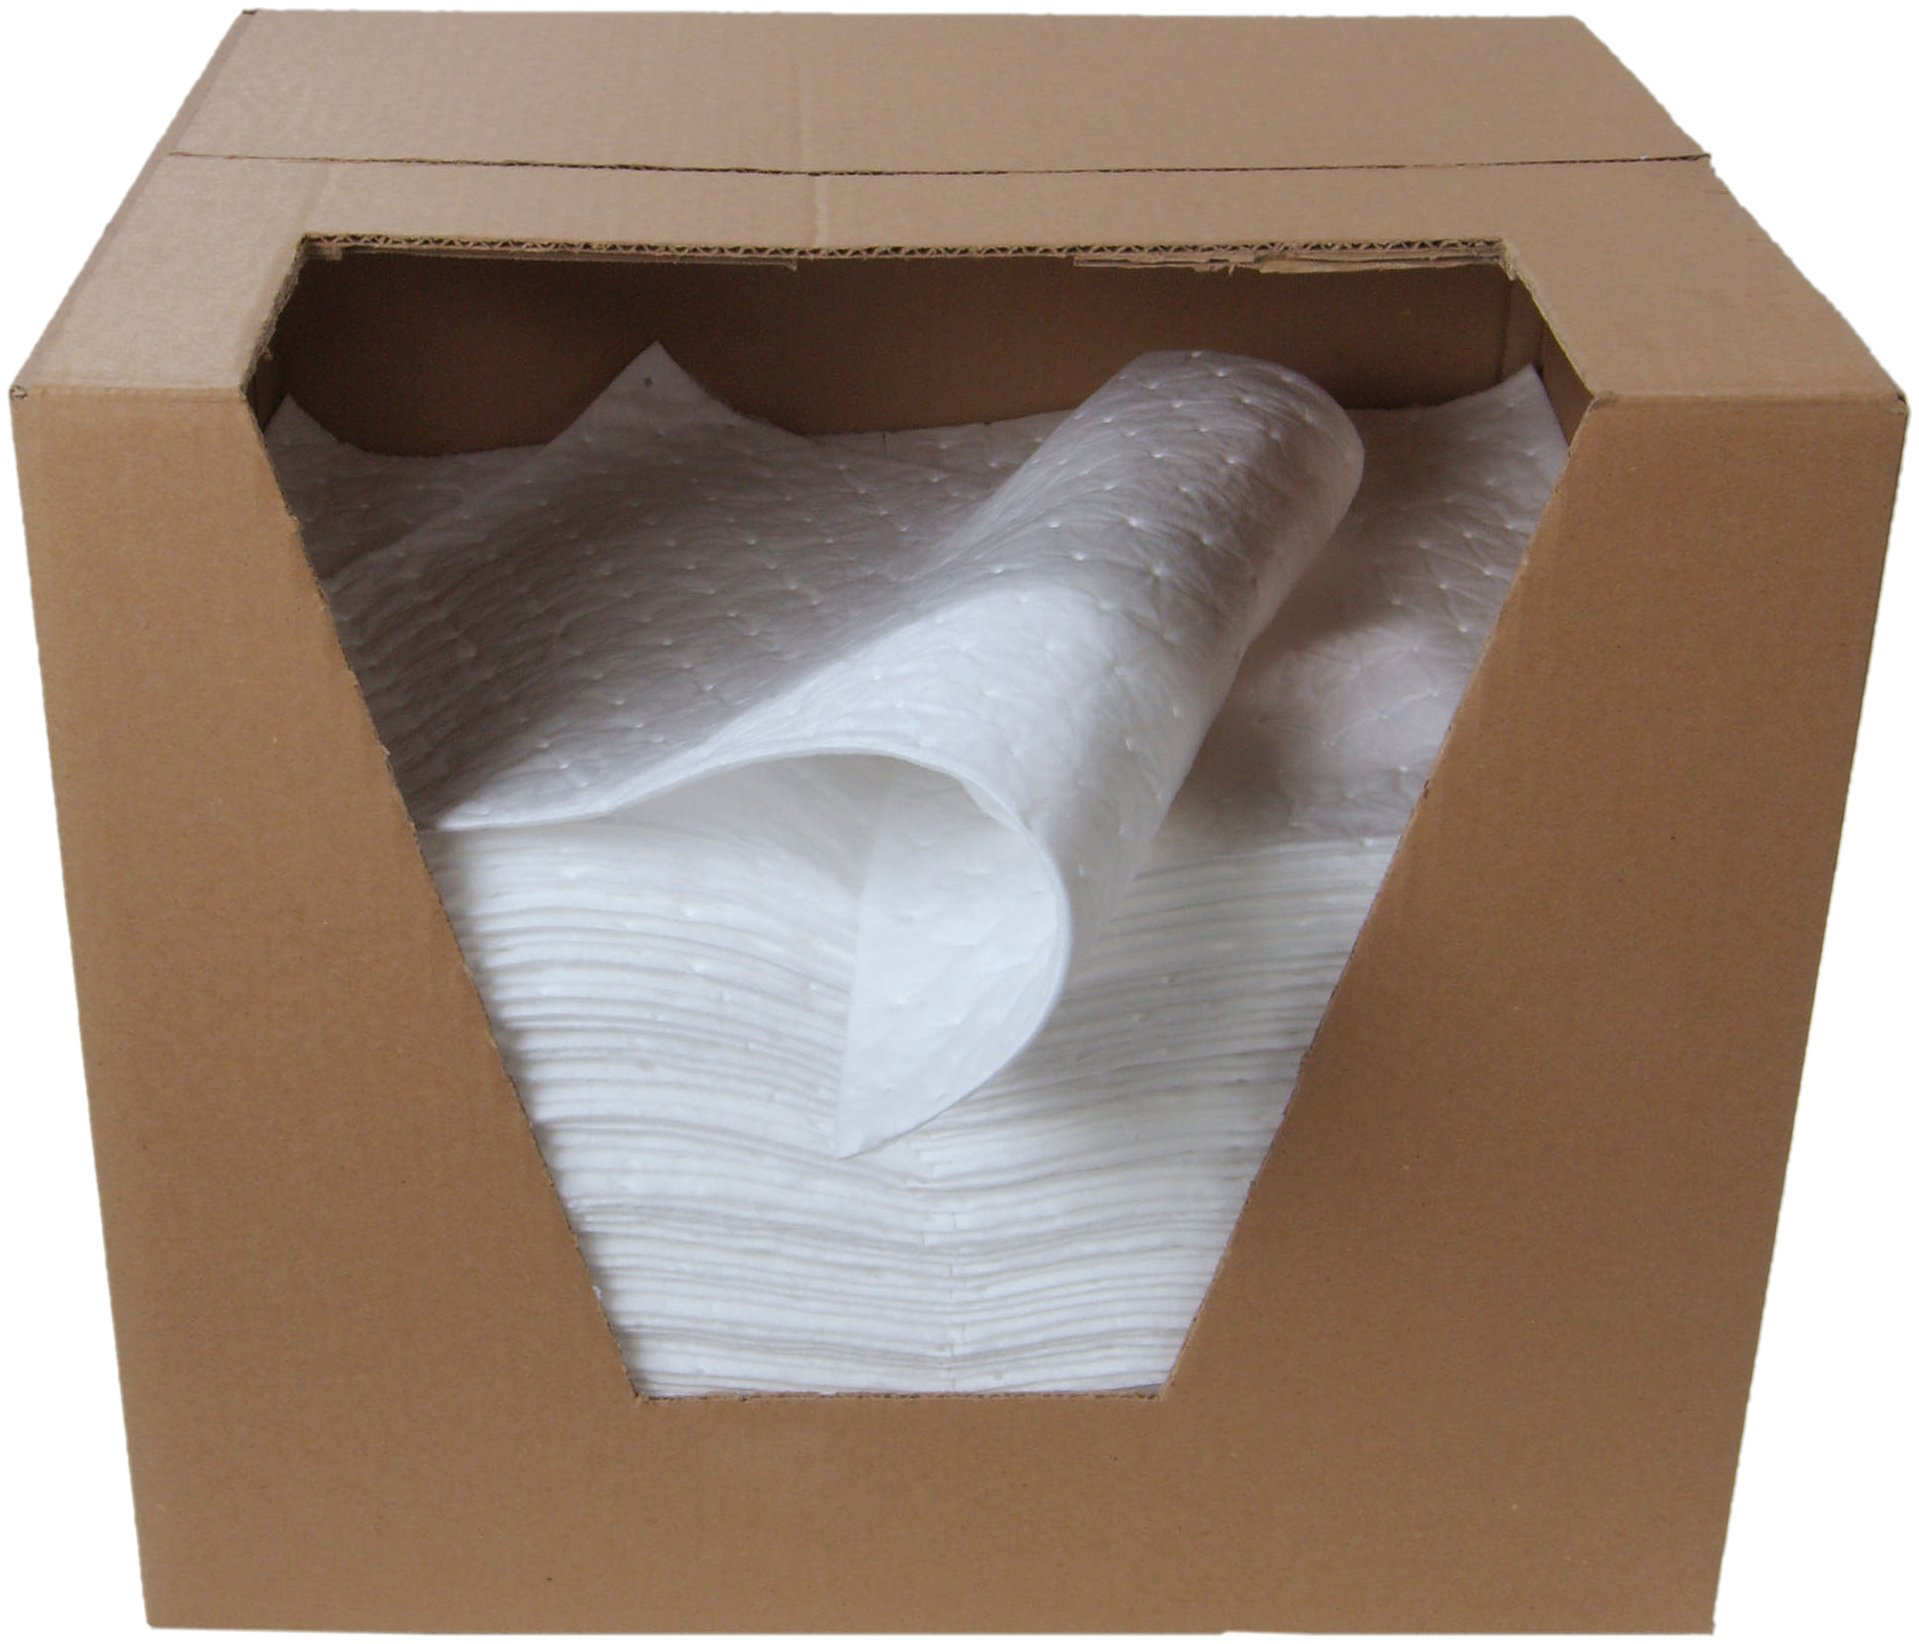 ESP 1MBWPSL Polypropylene Heavy Weight Meltblown Oil Only Absorbent Single Sided Laminated Pad, 18'' Length x 15'' Width, White (100 Per Bale)